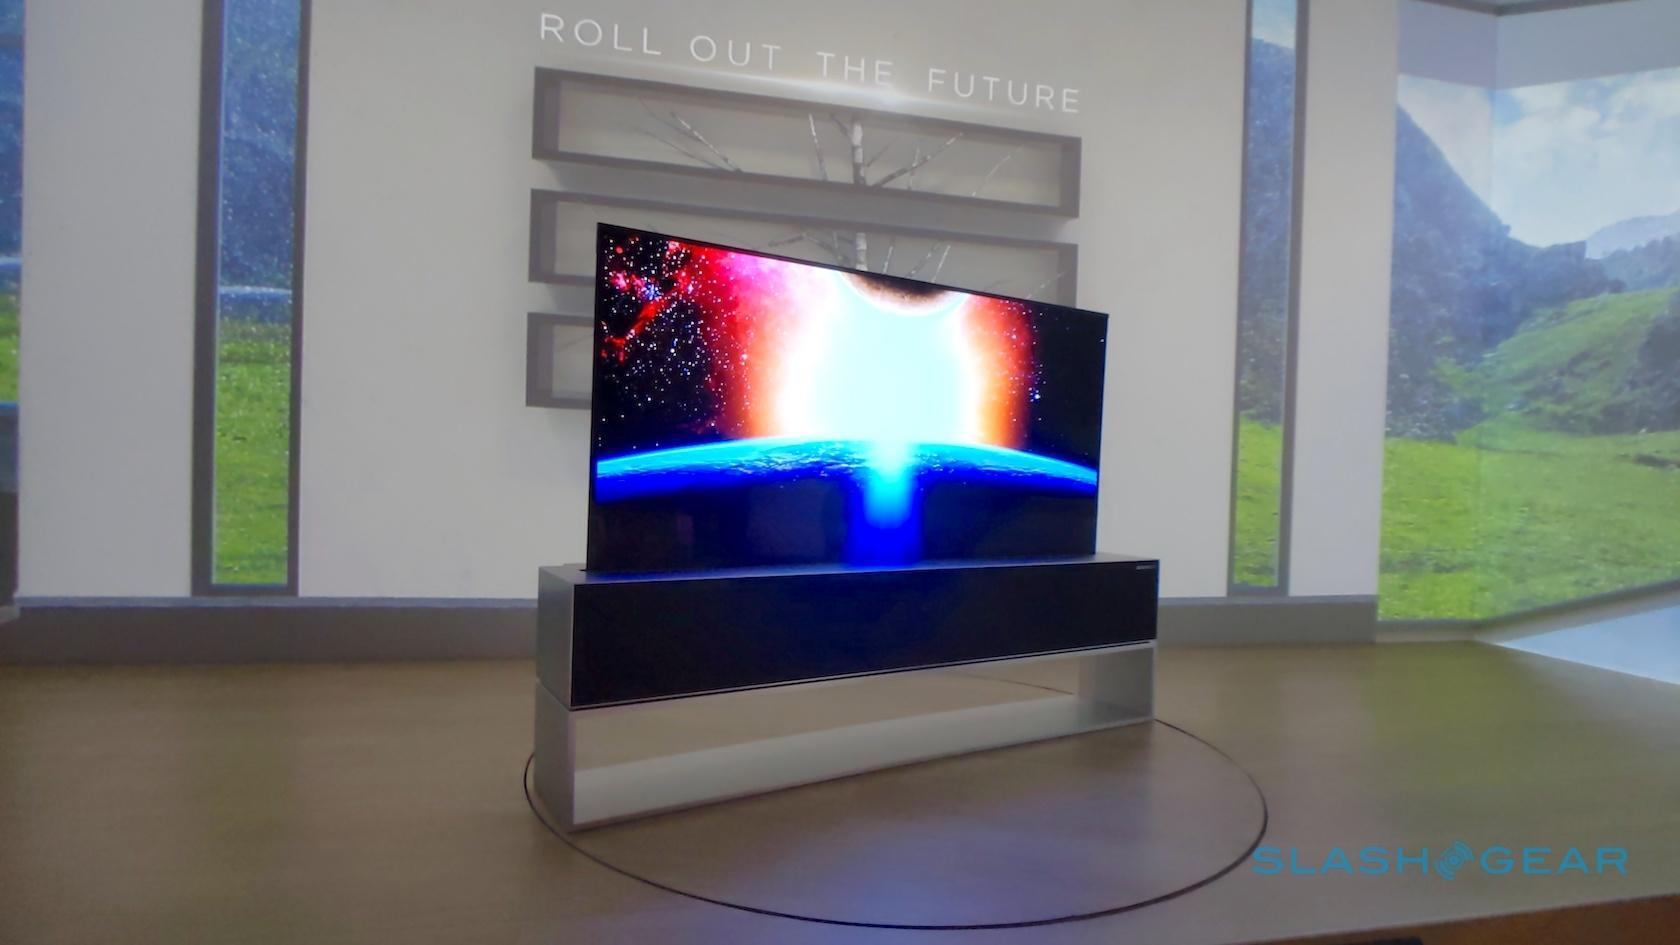 LG's rollable TV is slick enough to silence any skeptics - SlashGear